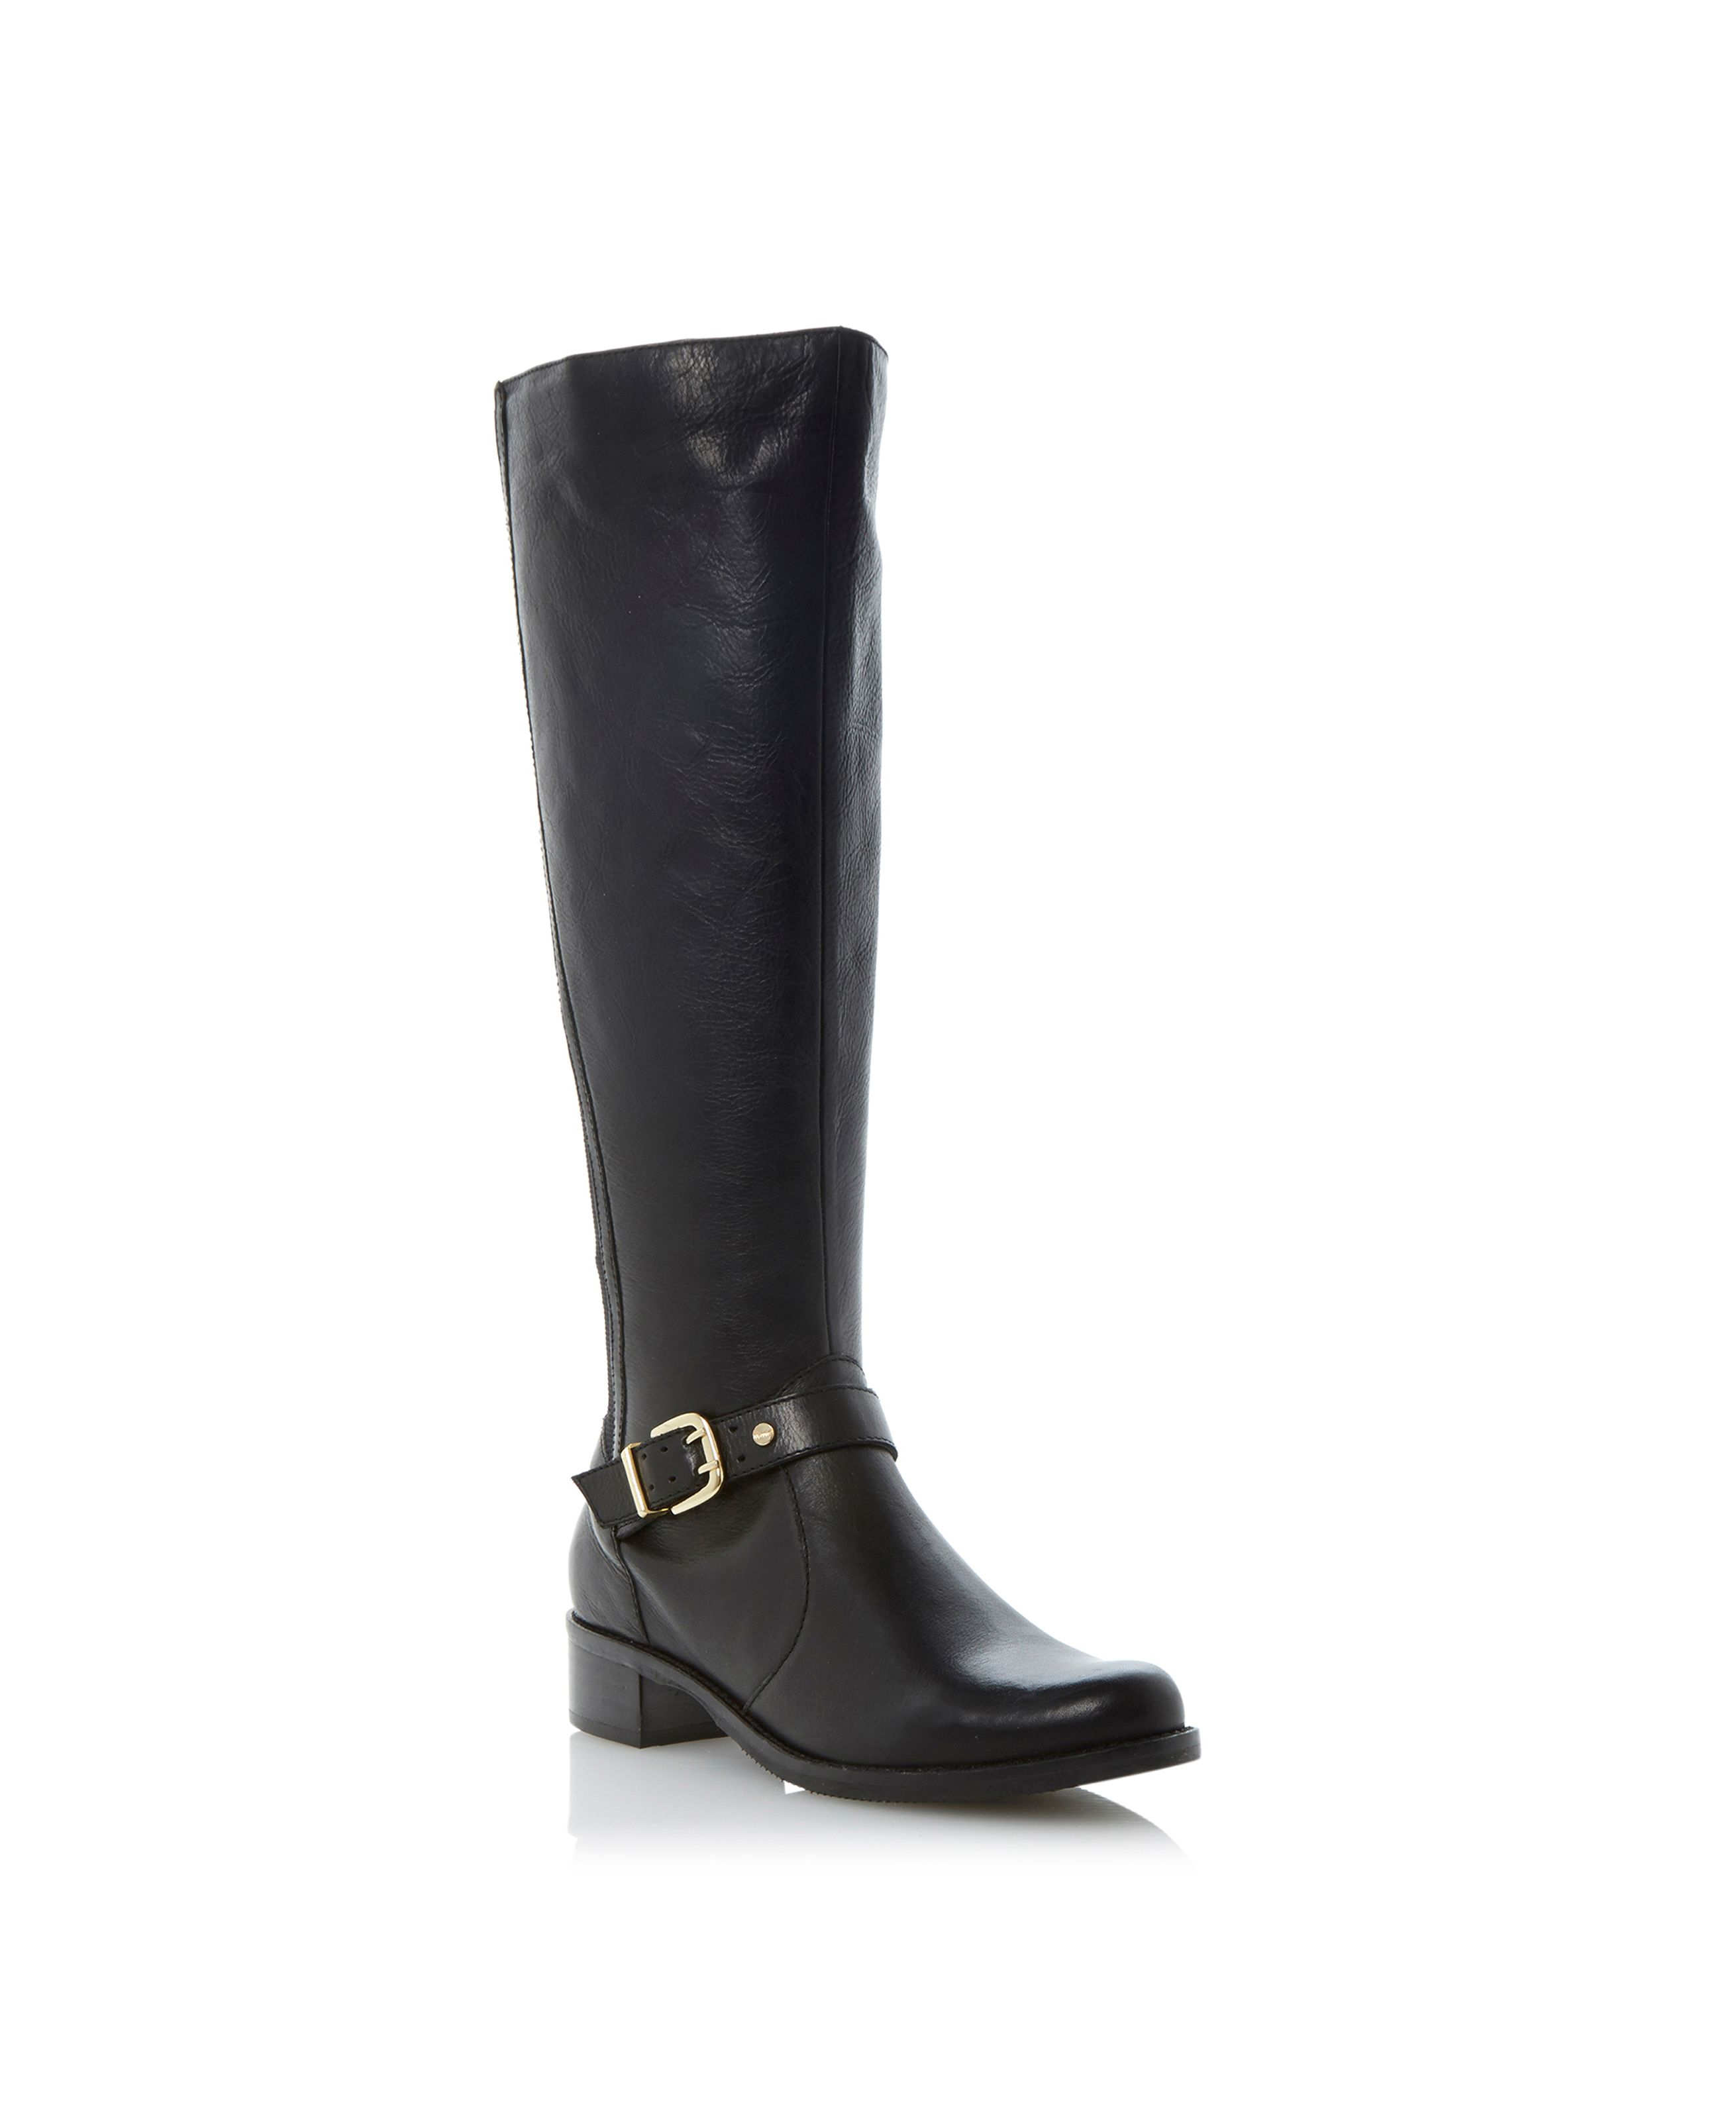 Tippler buckle elastic riding boots